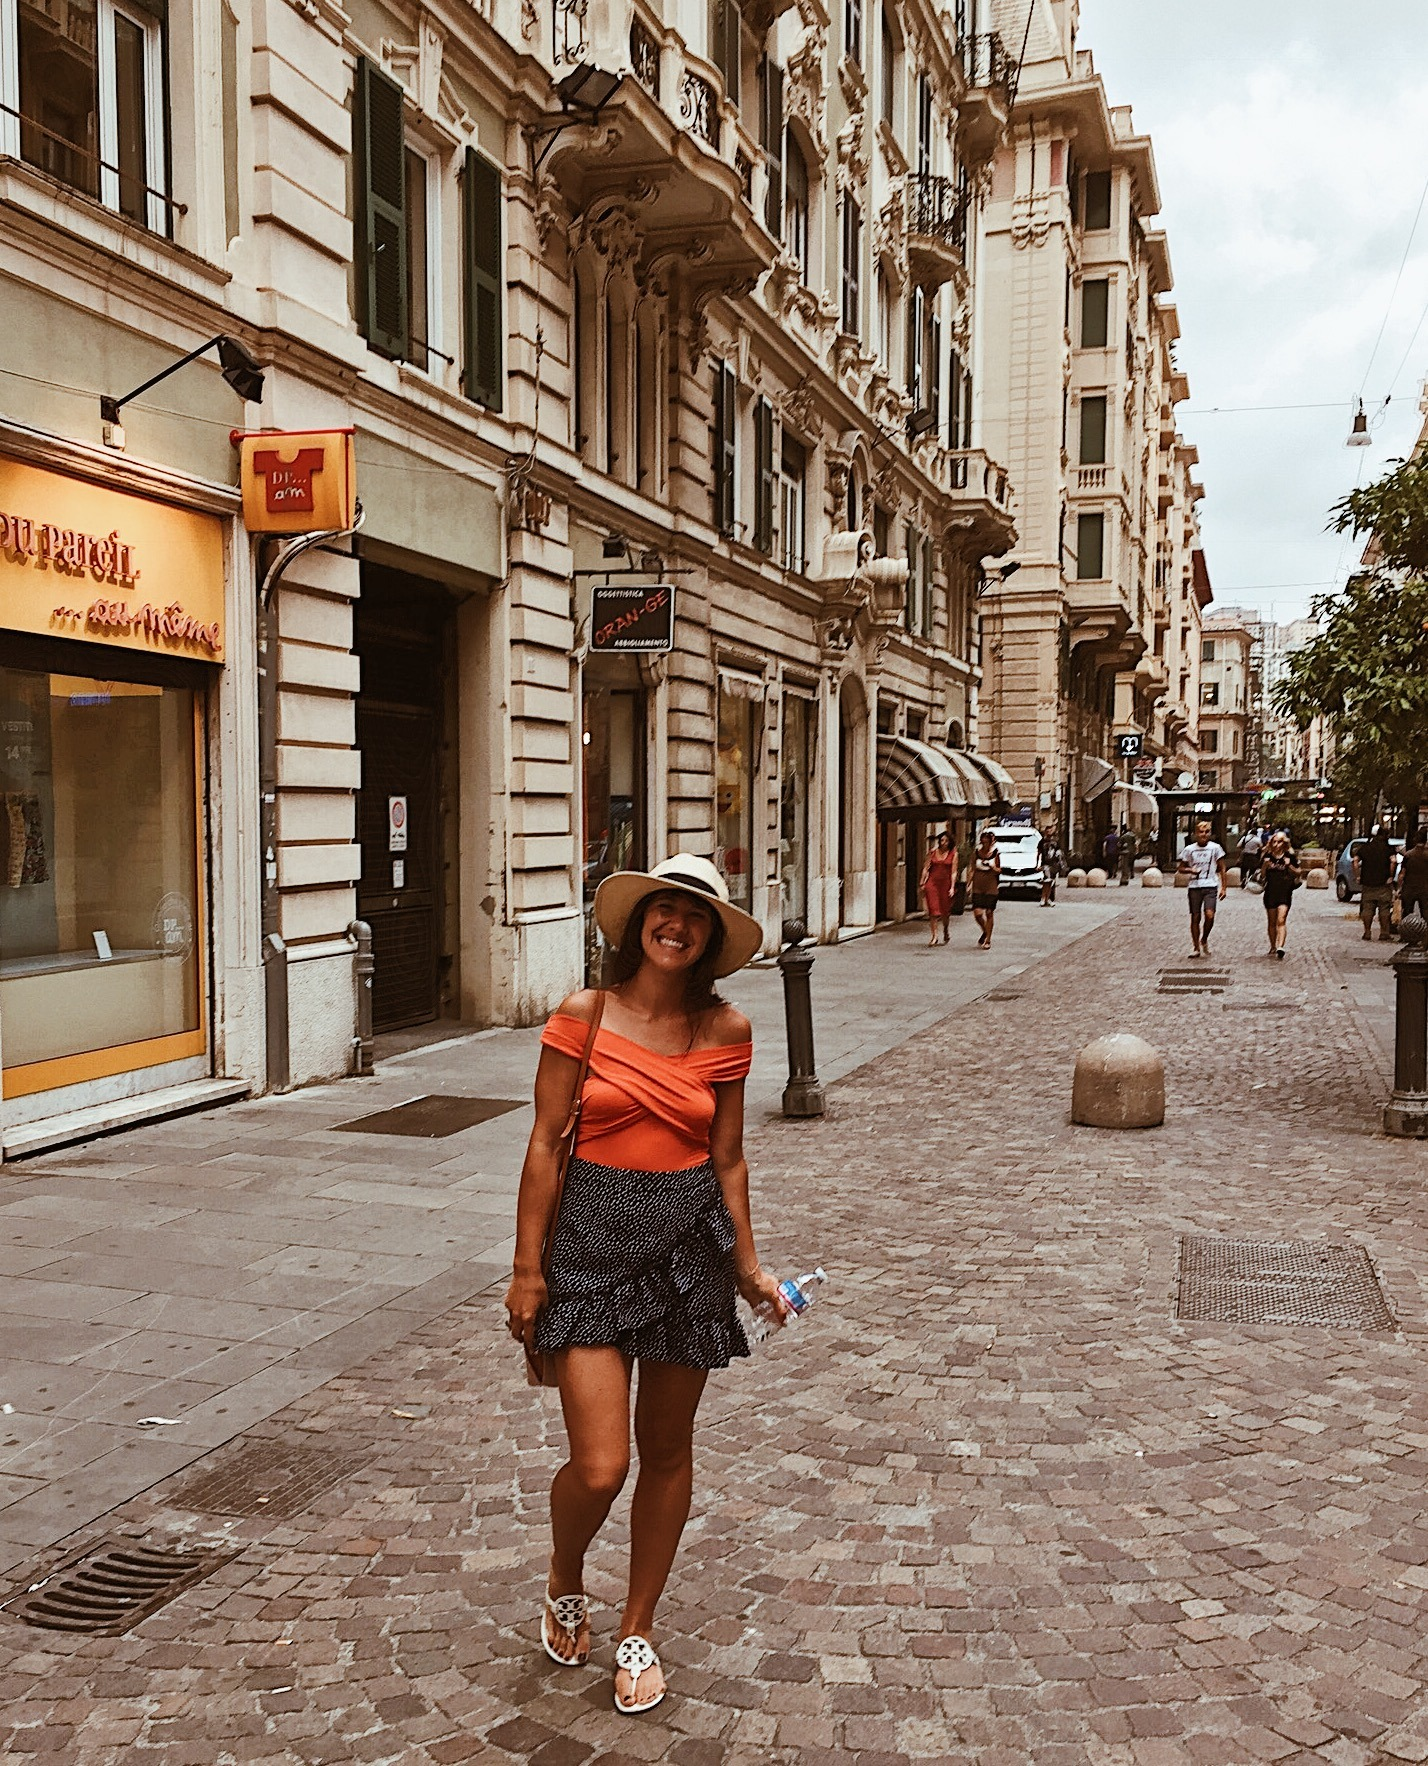 One Day Road Trip from Cinque Terre to Milan | Italy Travel Diary - Vlog Included